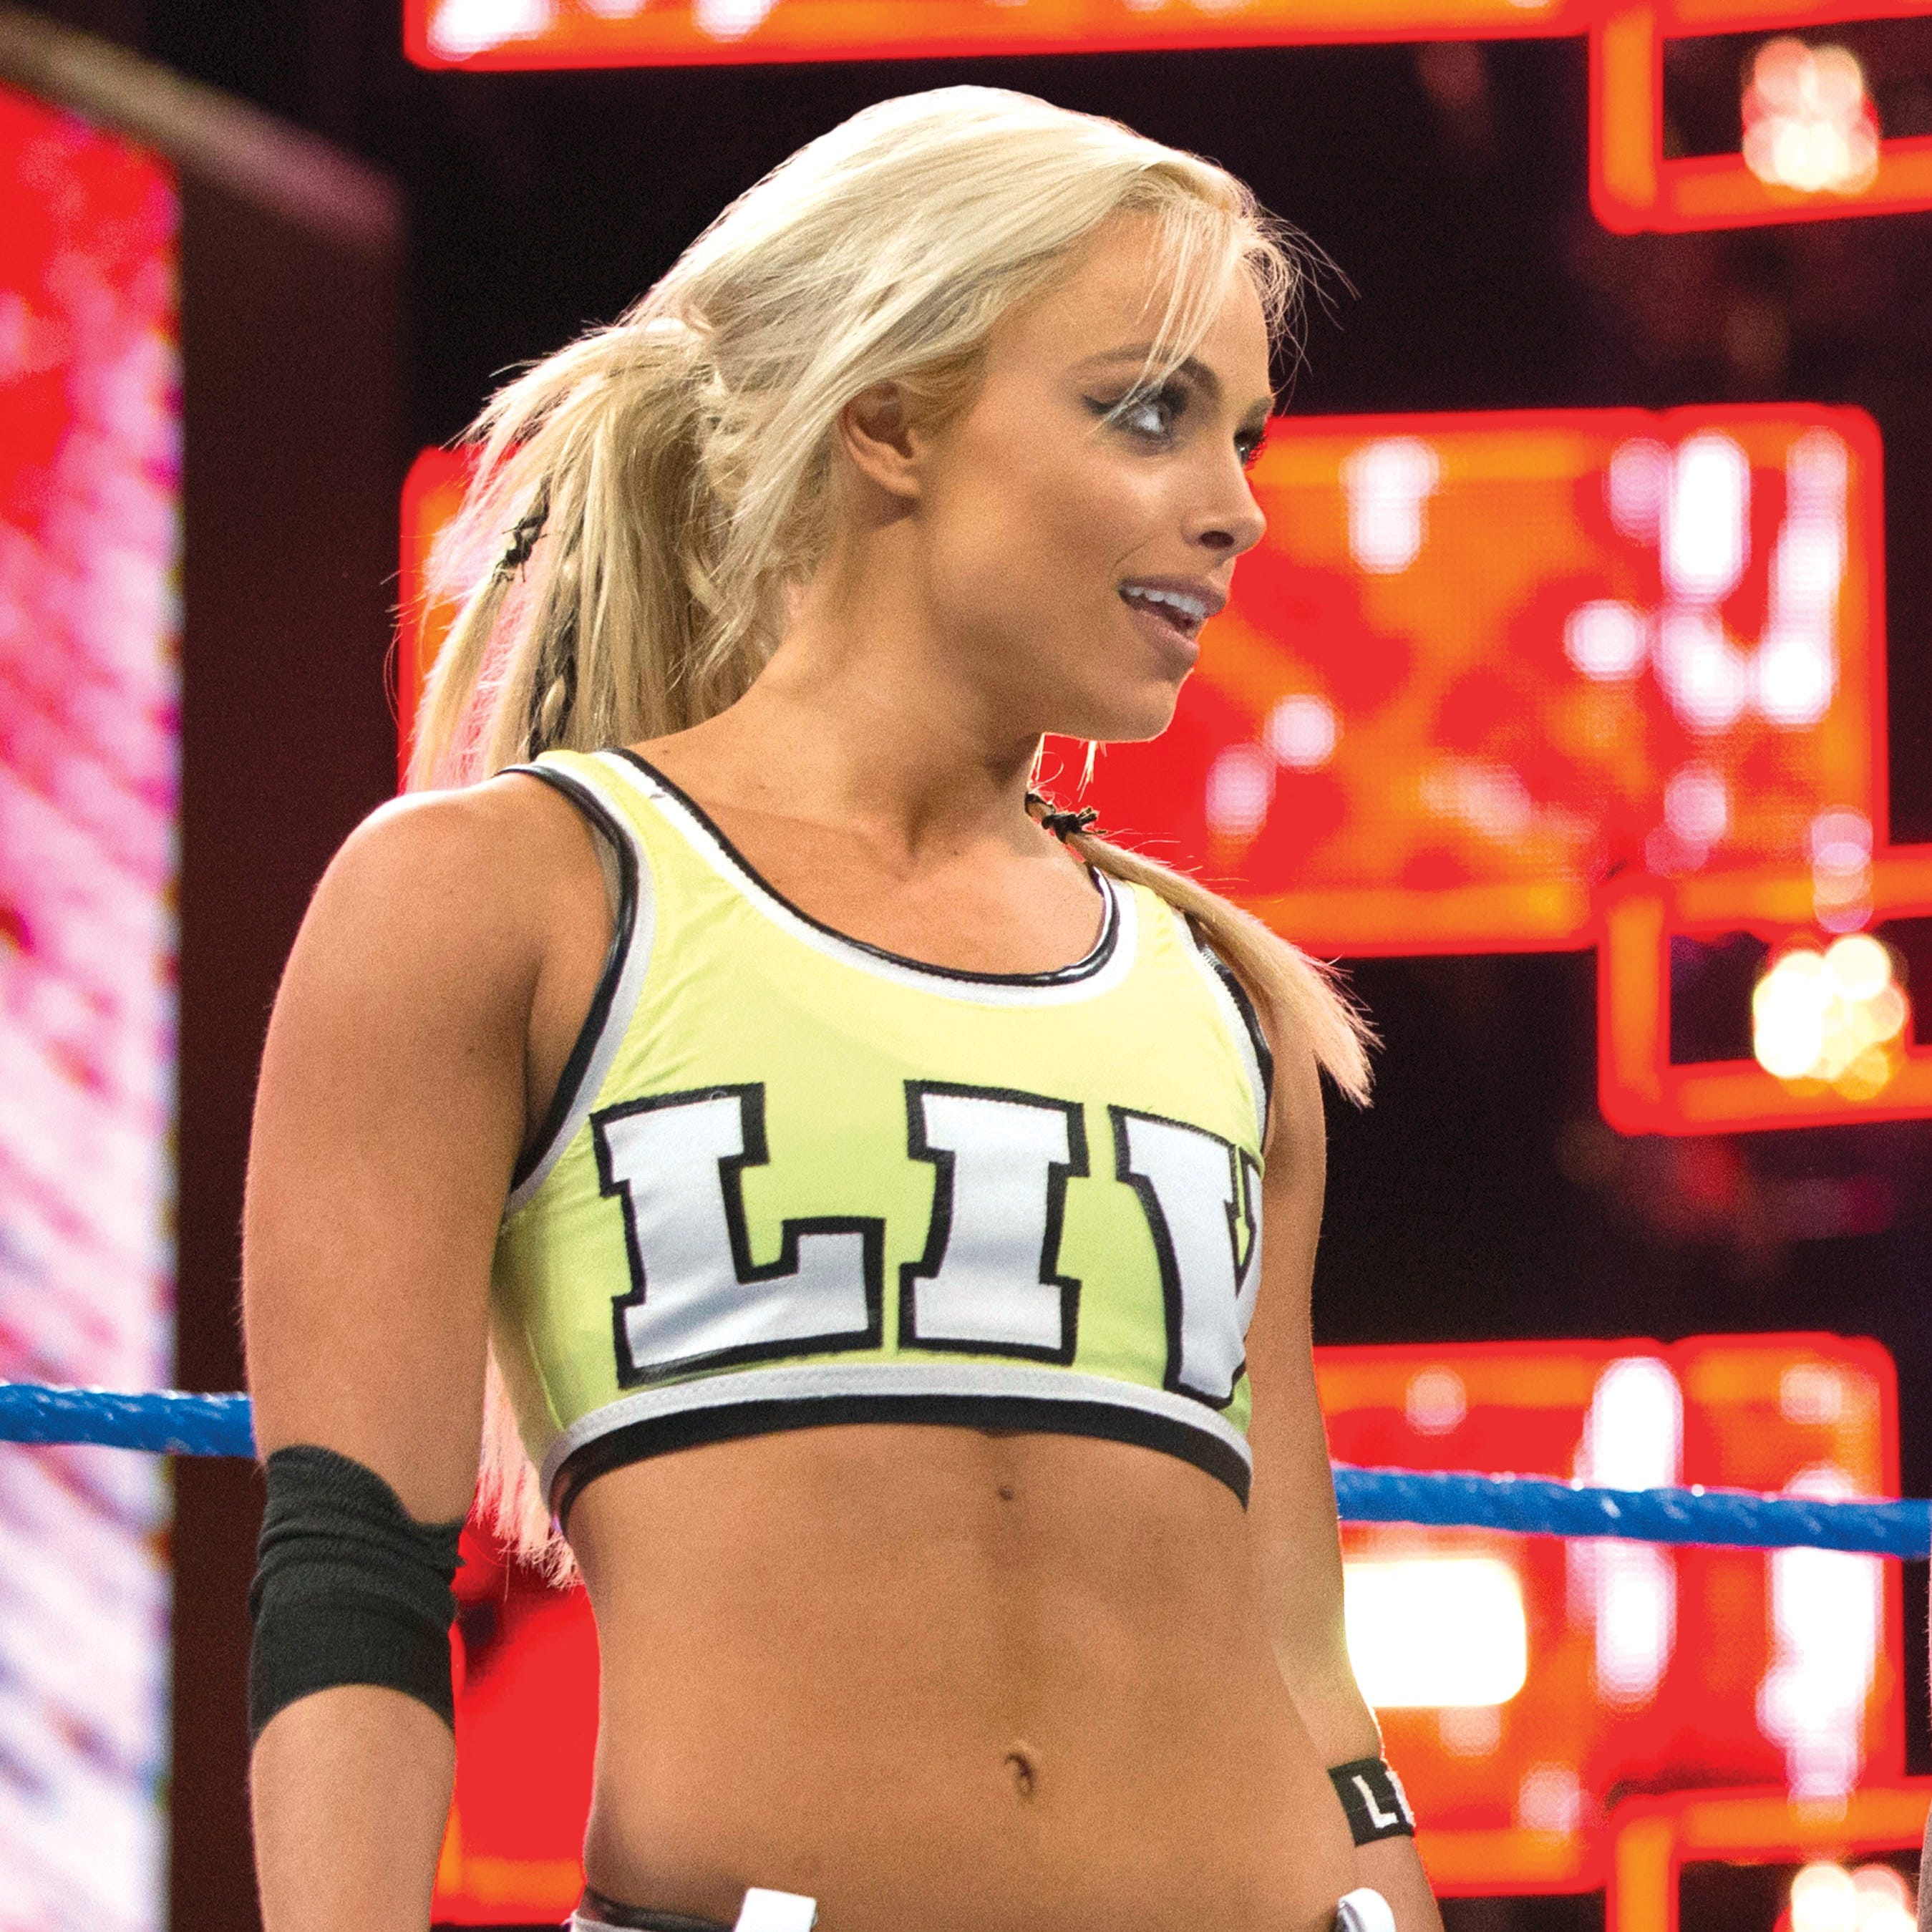 Bergen's Liv Morgan potentially injured by Brie Bella in Monday Night Raw match